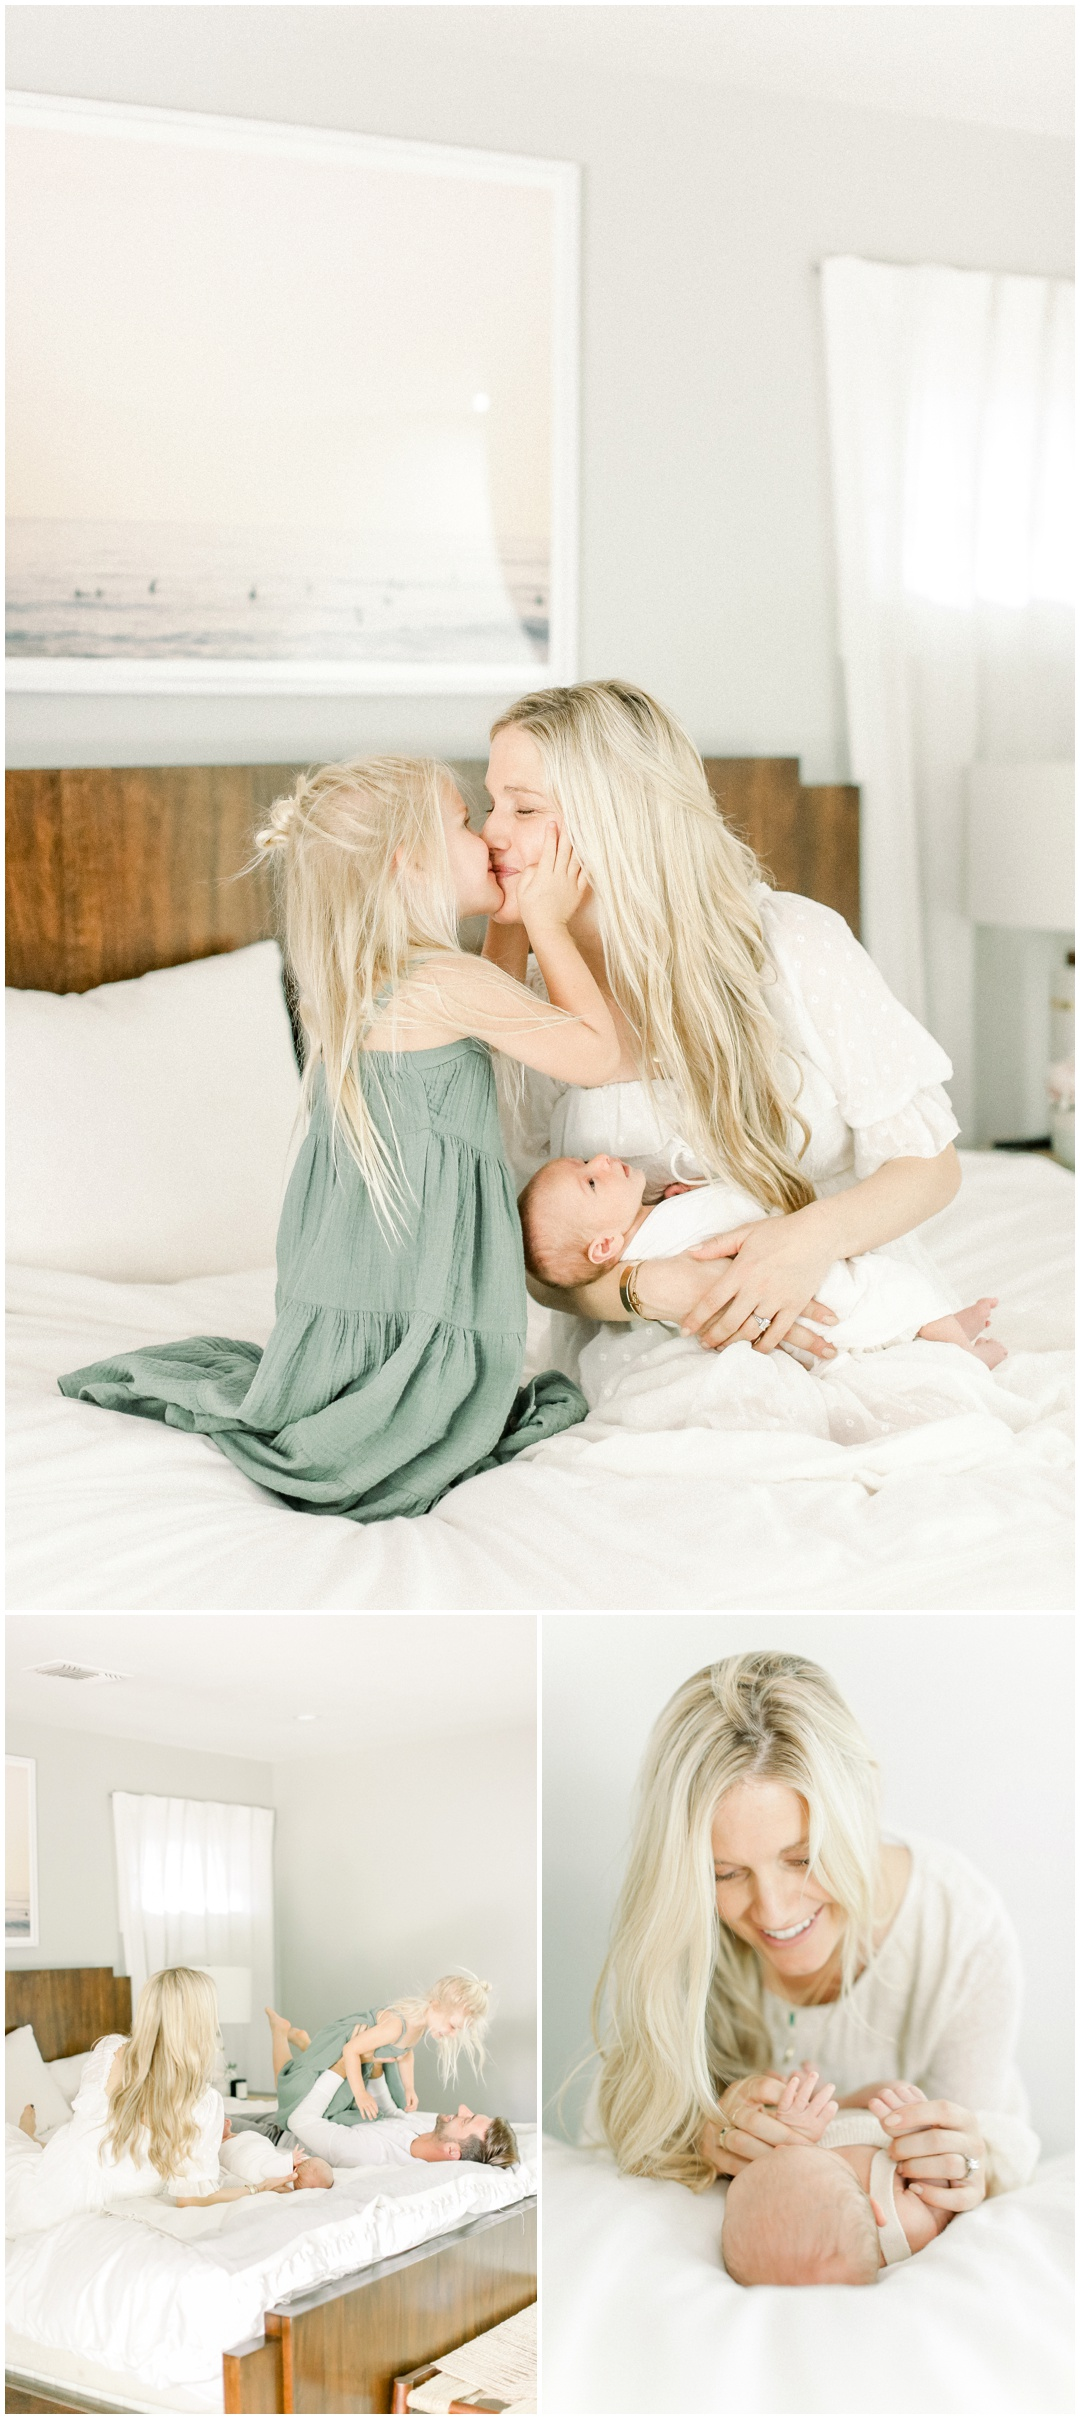 Newport_Beach_Newborn_Light_Airy_Natural_Photographer_Newport_Beach_Photographer_Orange_County_Family_Photographer_Cori_Kleckner_Photography_Newport_Beach_Photographer_Jacobs_Shelly__4071.jpg